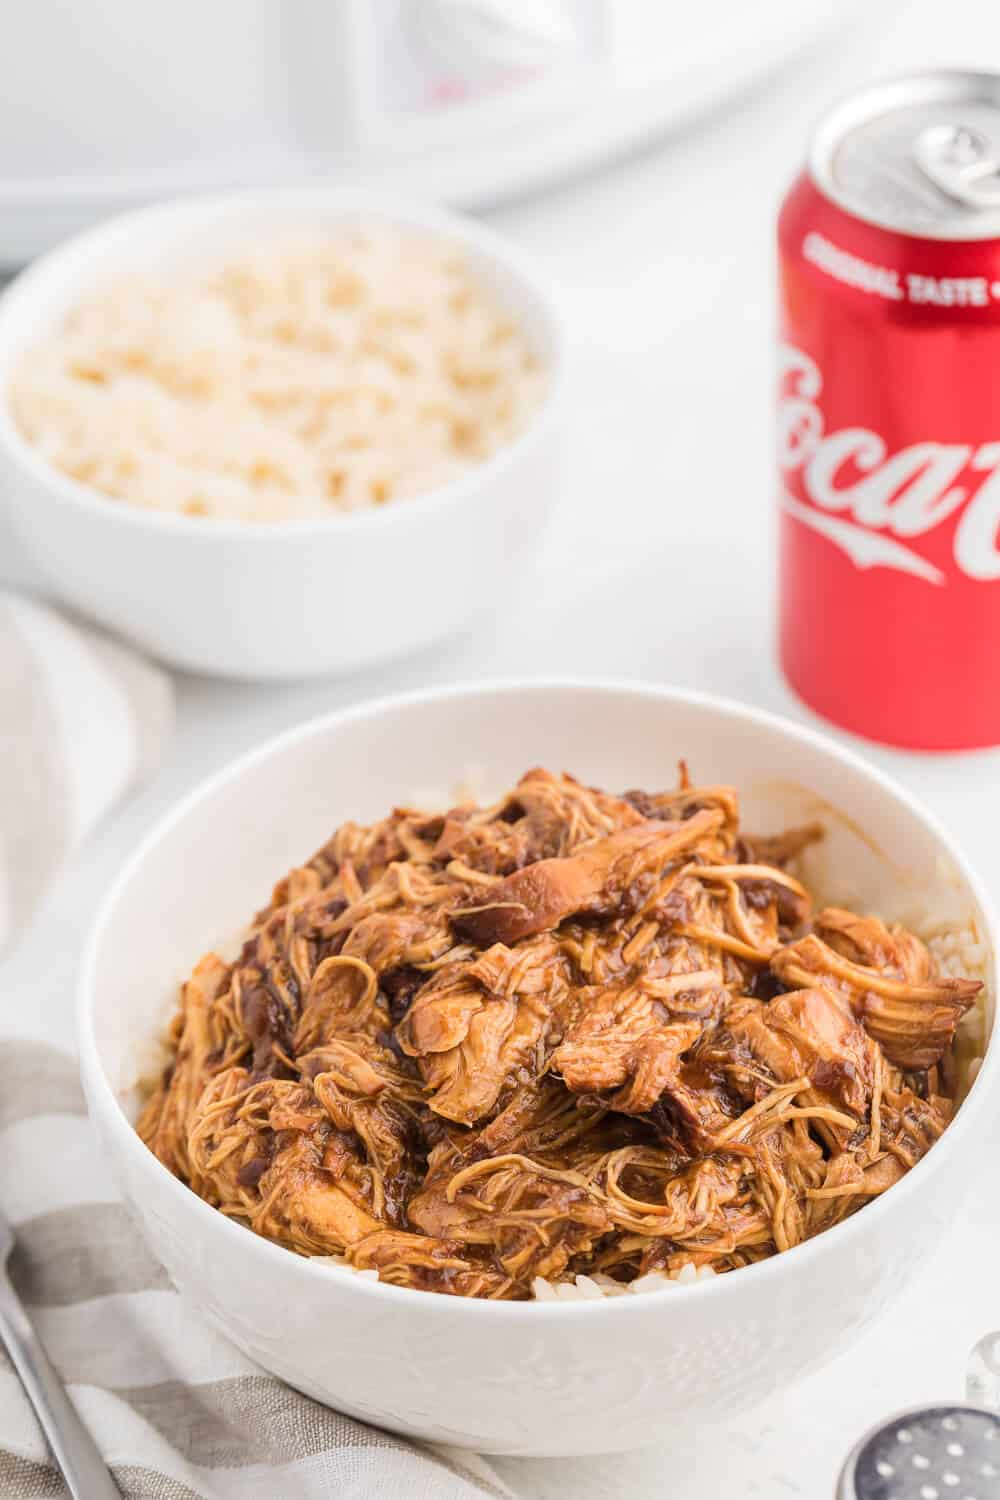 Cherry Coke Chicken - The easiest sweet and savory chicken recipe! Add some soda to your Crockpot for the most tender barbecue chicken breasts.